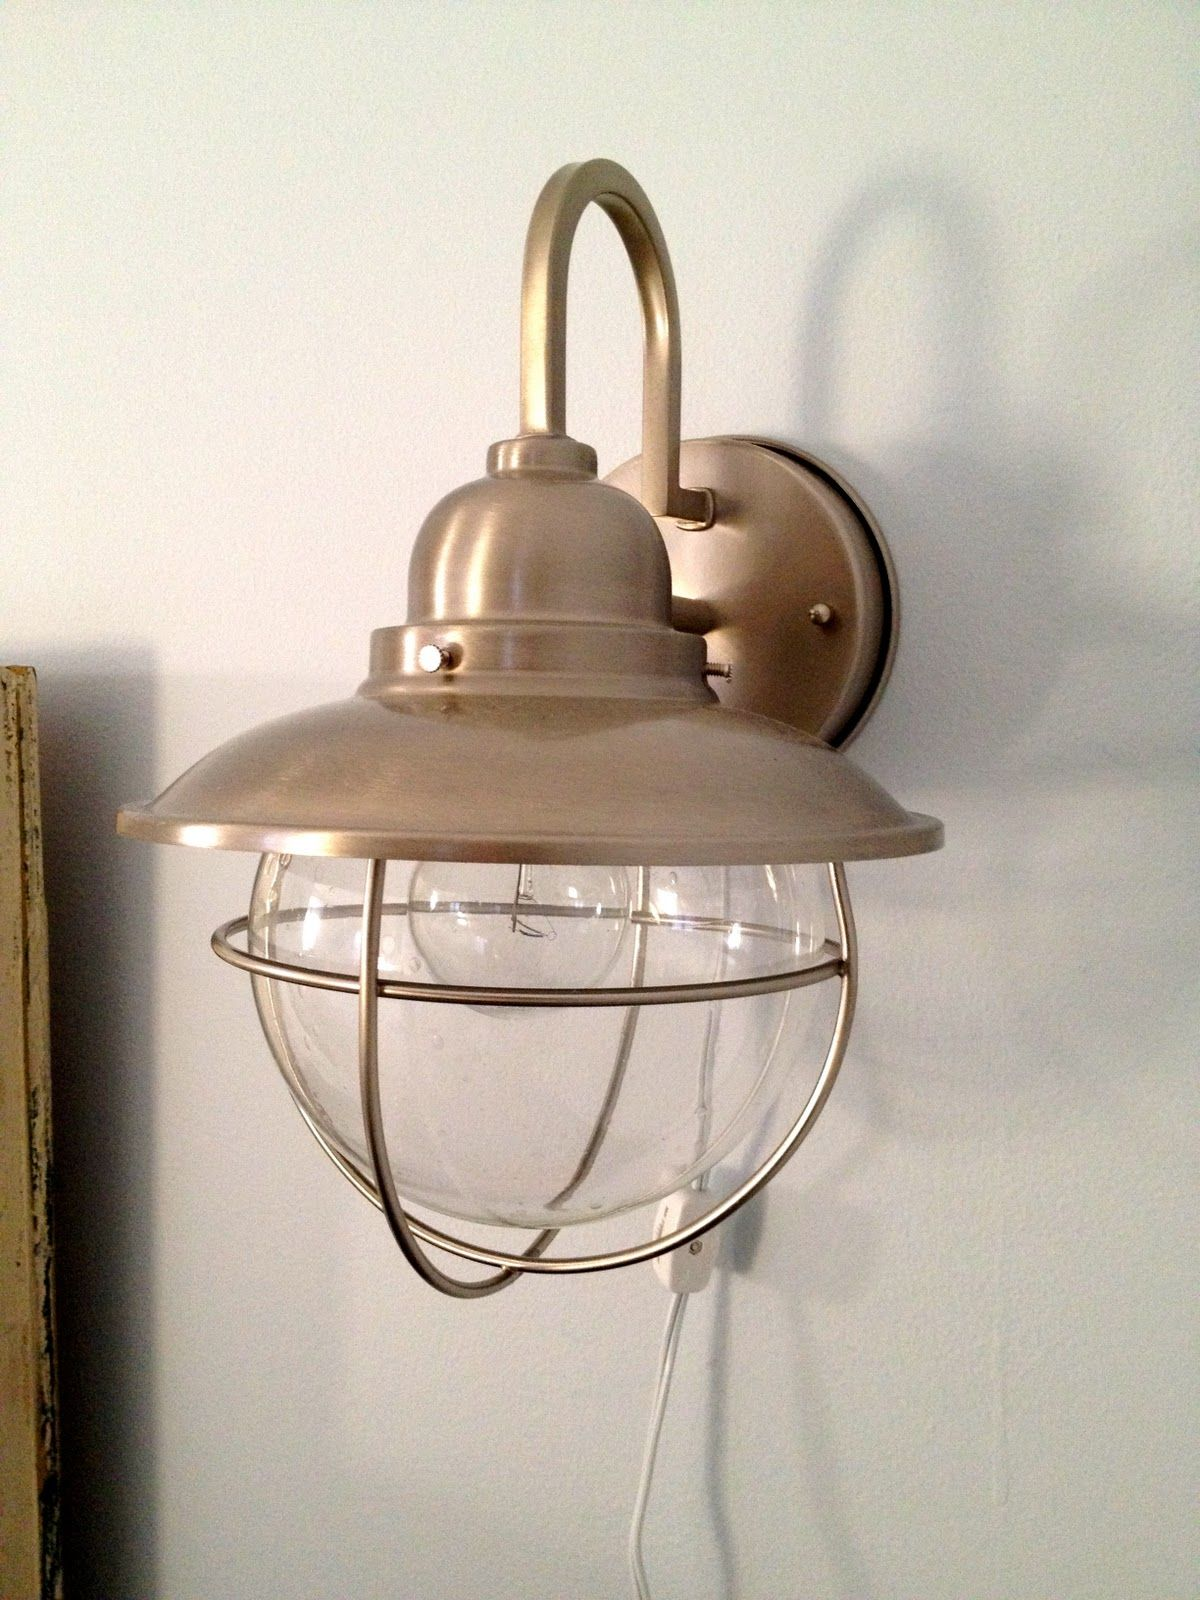 How to make a hardwire wall light into a plug in wall